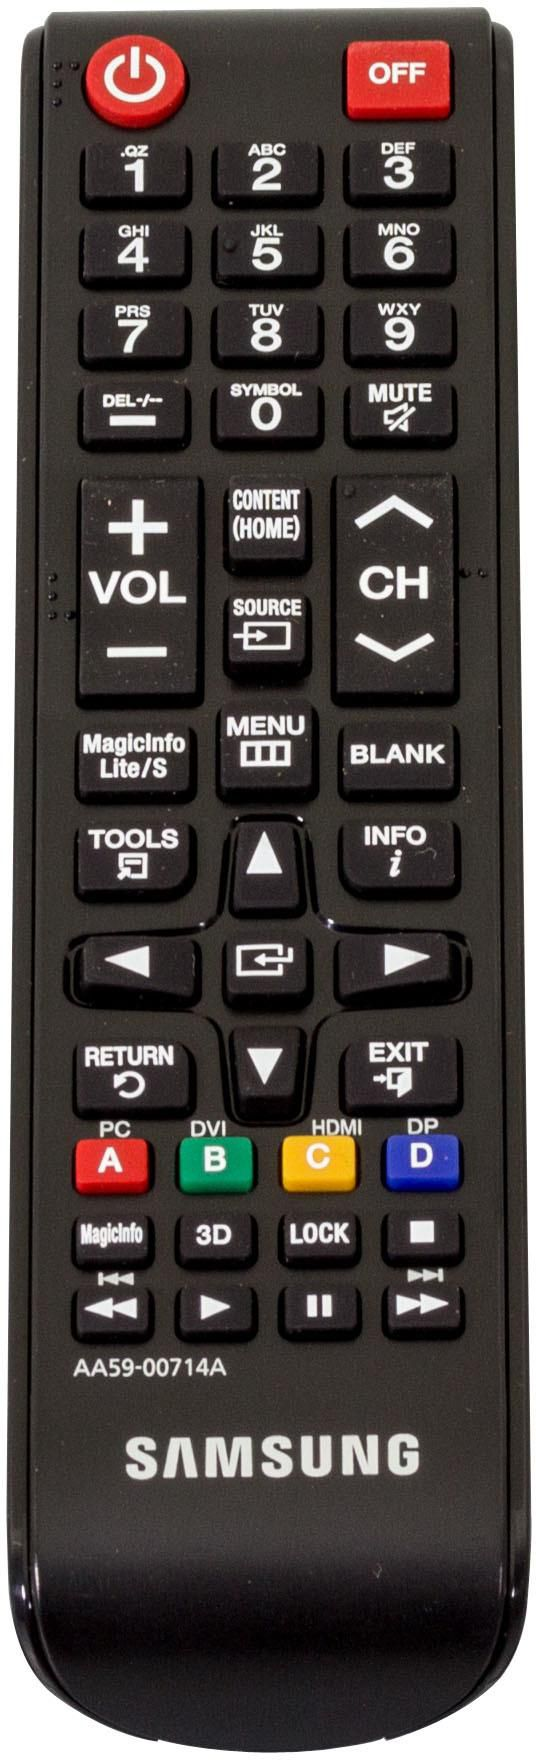 Samsung Remote Control TM1240 - Approx 1-3 working day lead.